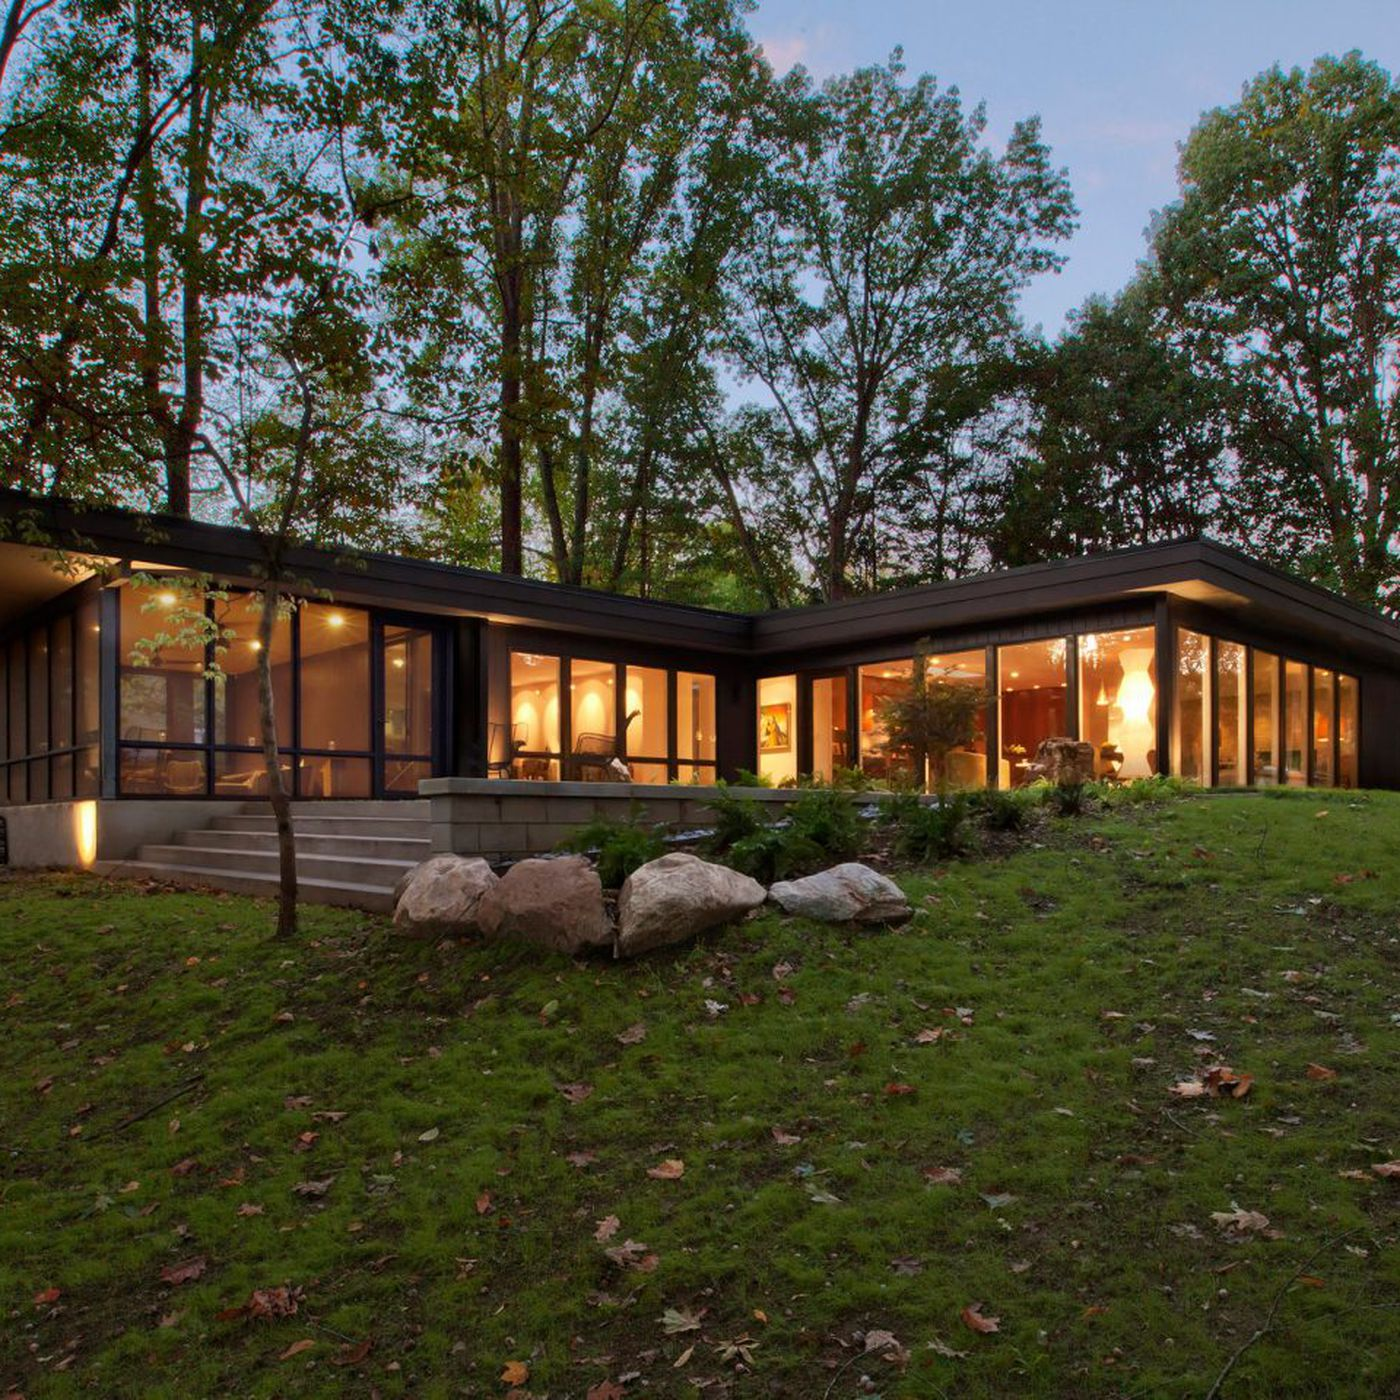 32s home gets contemporary overhaul in Indiana   Curbed